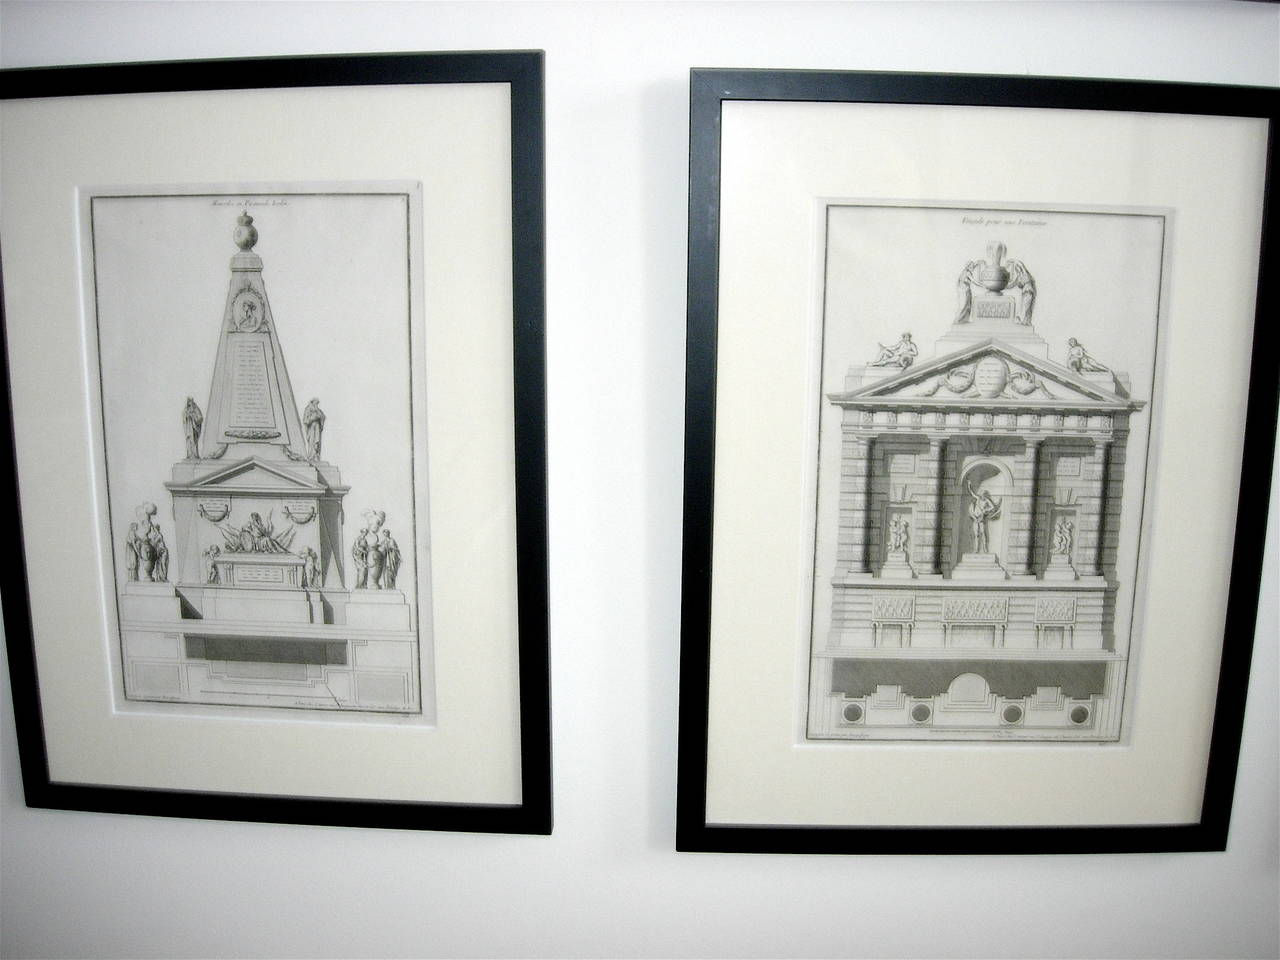 18th Century and Earlier Extensive Collection of 18th Century Architectural Engravings, Priced Per Piece. For Sale